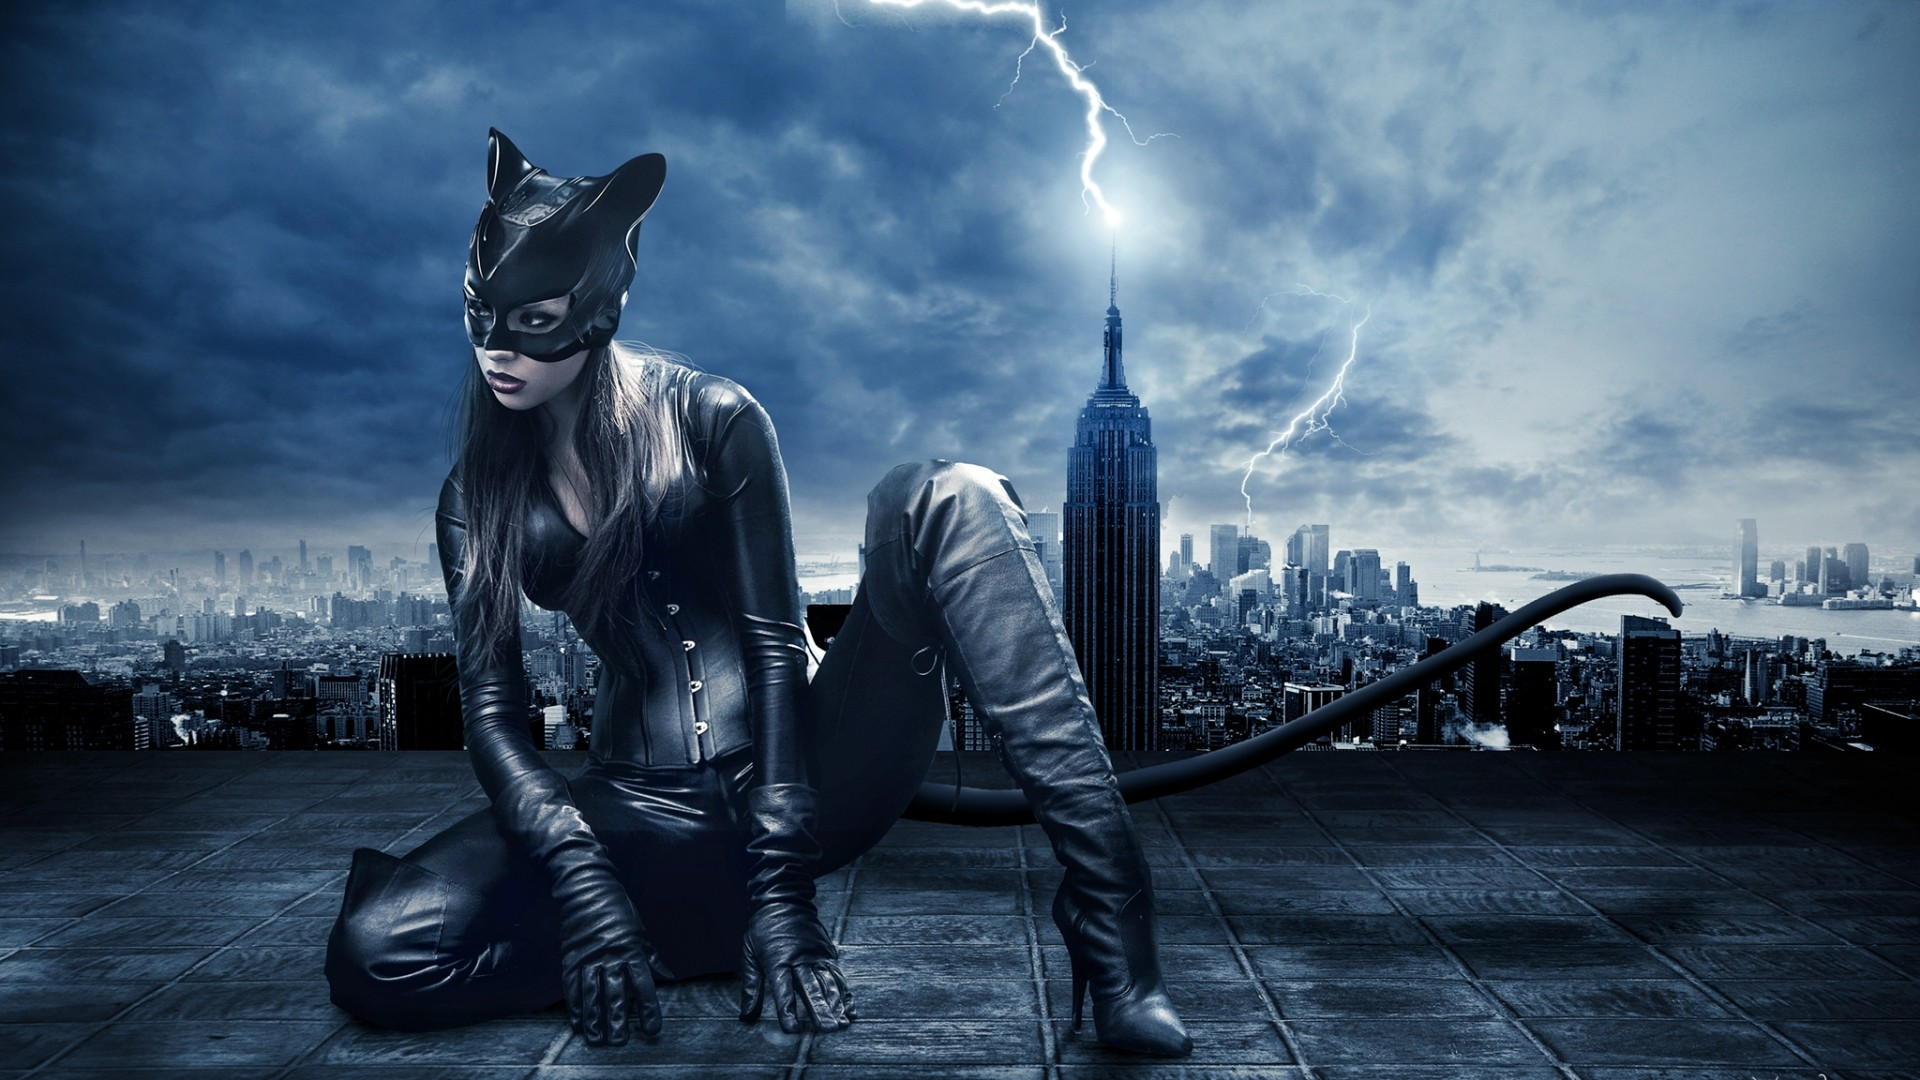 1920x1080 Preview Wallpaper Catwoman Batman Dc Comics